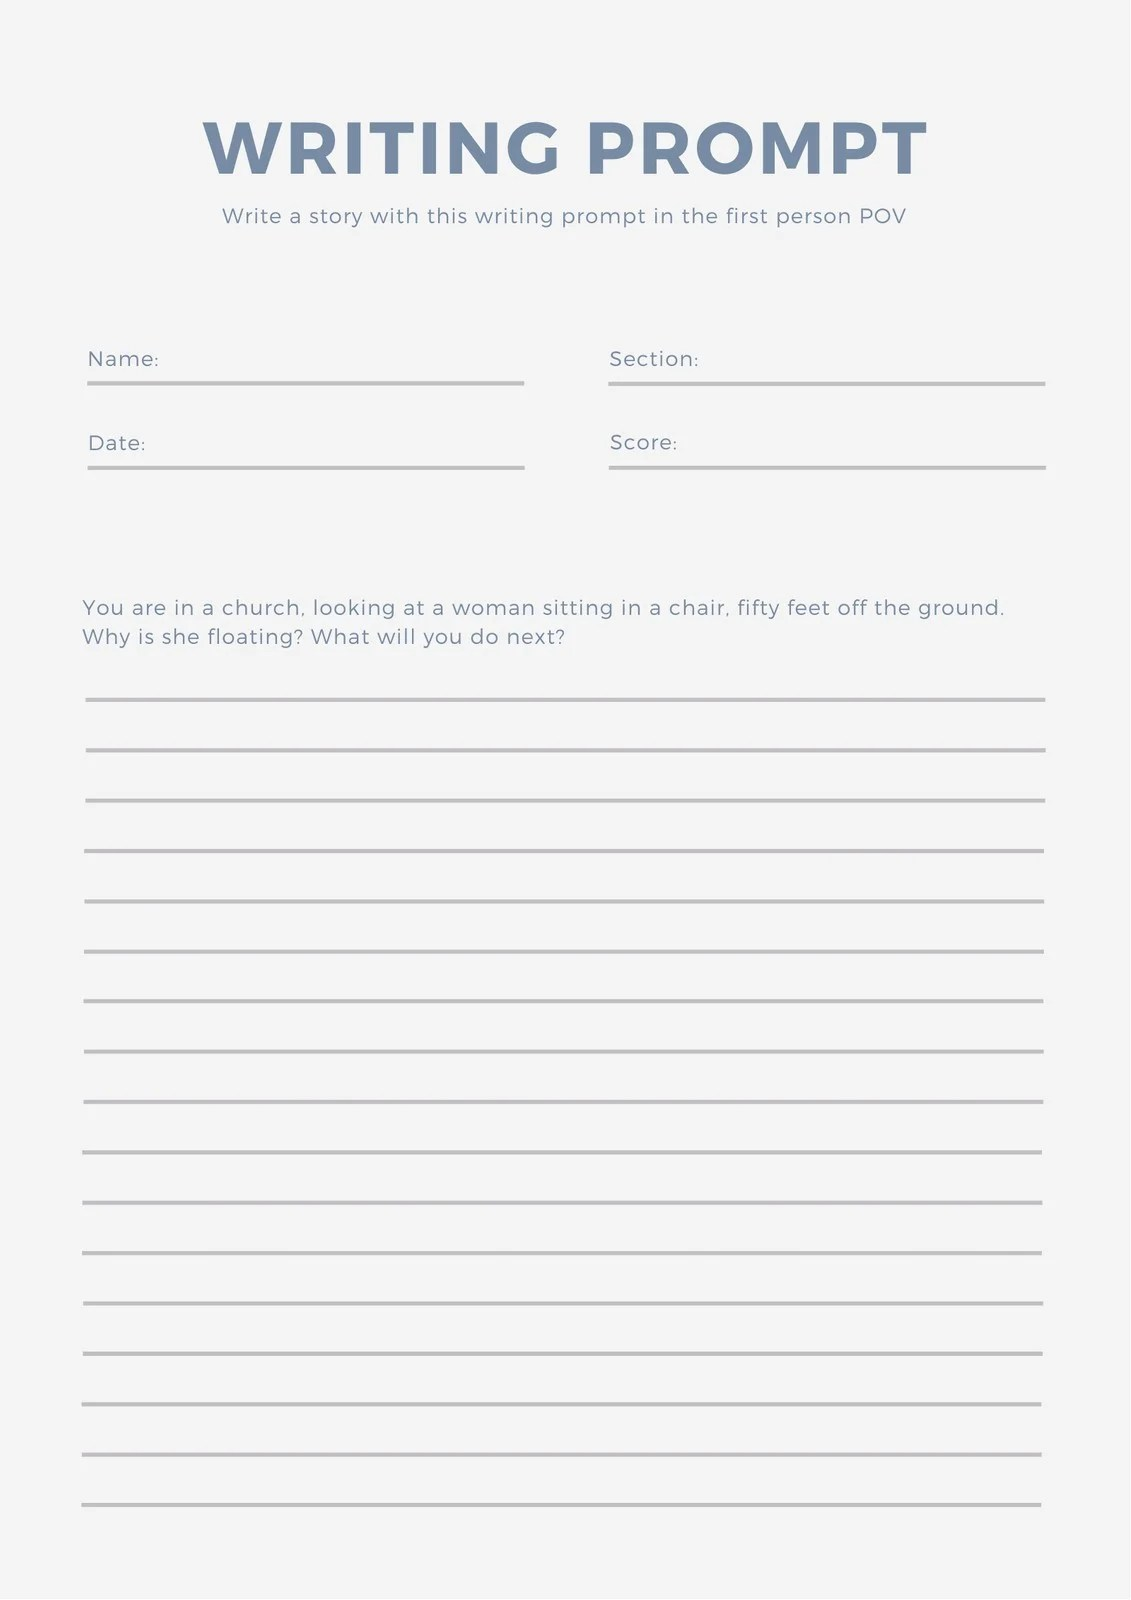 Blueysis Writing Prompt Worksheet